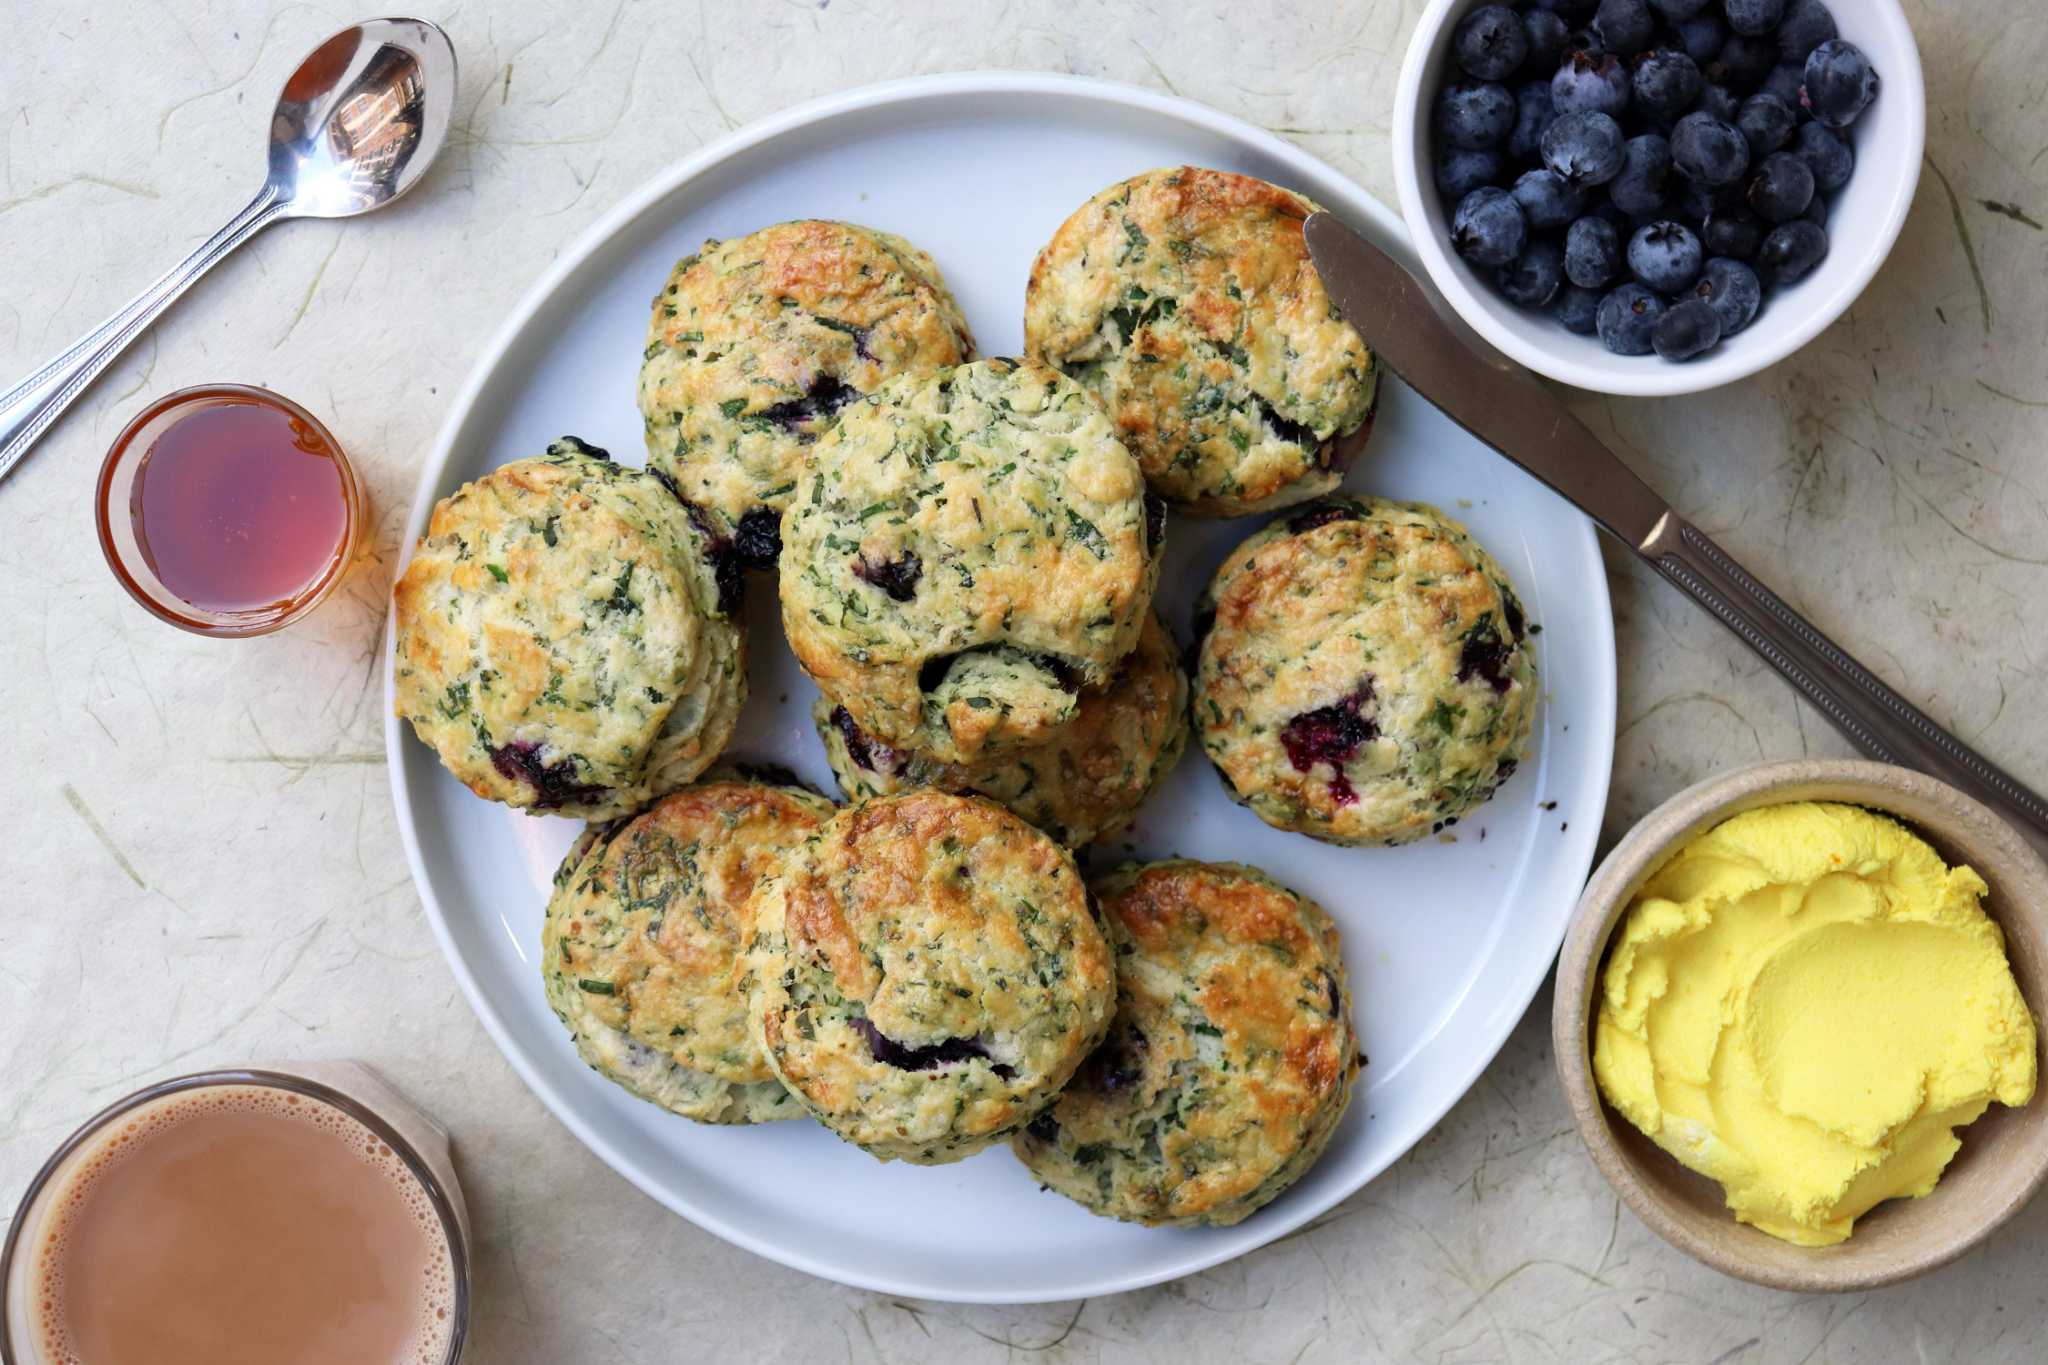 Fenugreek and blueberries are a match made in these heavenly Southern-style biscuits